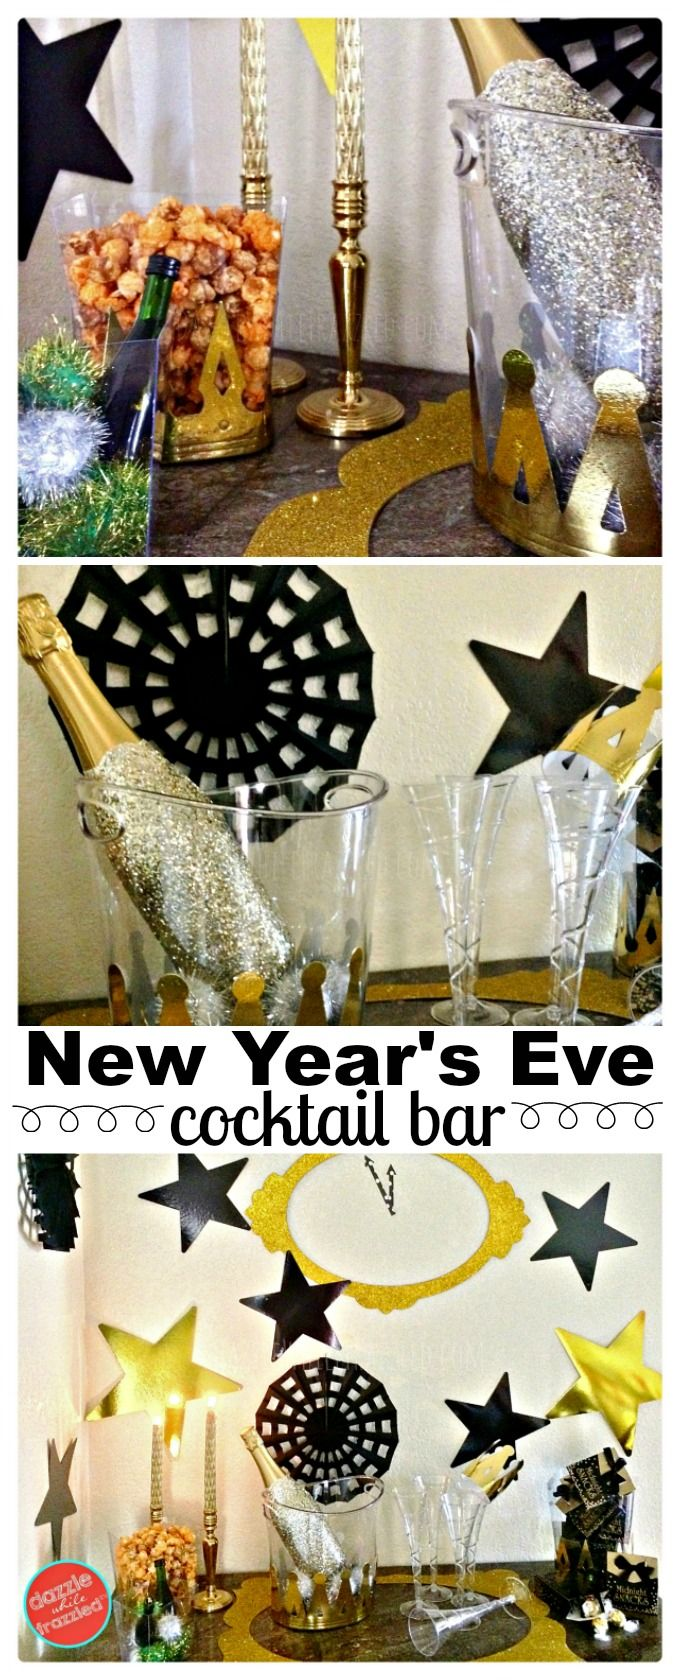 How to set up a New Year's Eve cocktail bar, beverage and snack station at-home. DIY New Year's Eve party decorations with gold and black metallic glittery decor. Celebrate New Year's with kids at home. via @https://www.pinterest.com/dazzlefrazzled/ #newyearsparty #CocktailParty